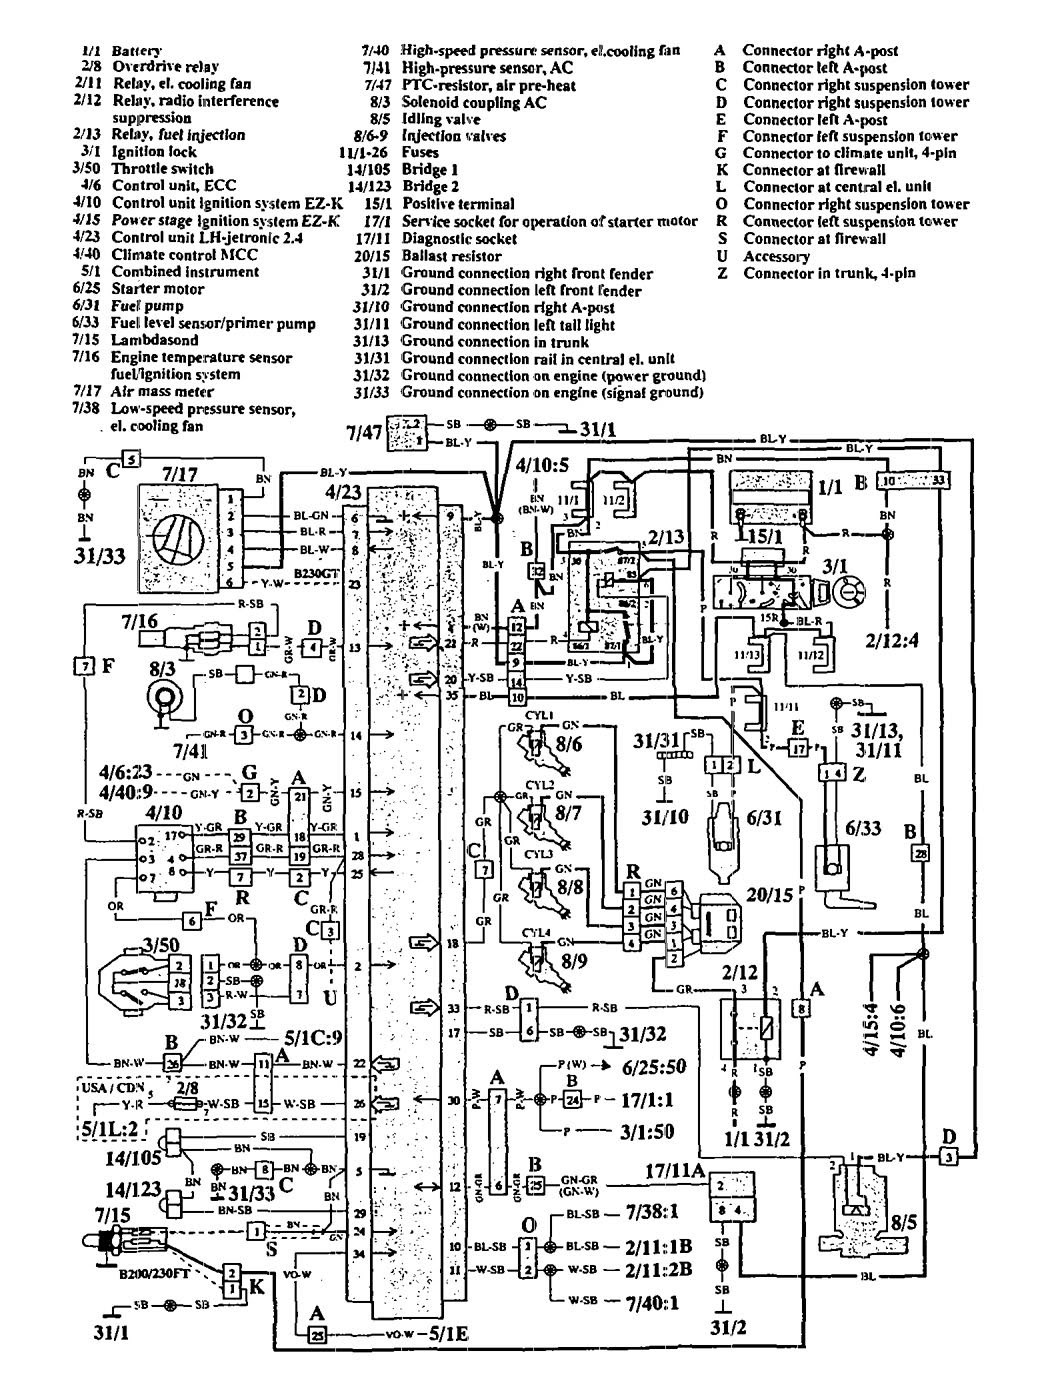 Diagram 1991 Volvo 940 Wiring Diagram Full Version Hd Quality Wiring Diagram Homeprewiring2r Atuttasosta It